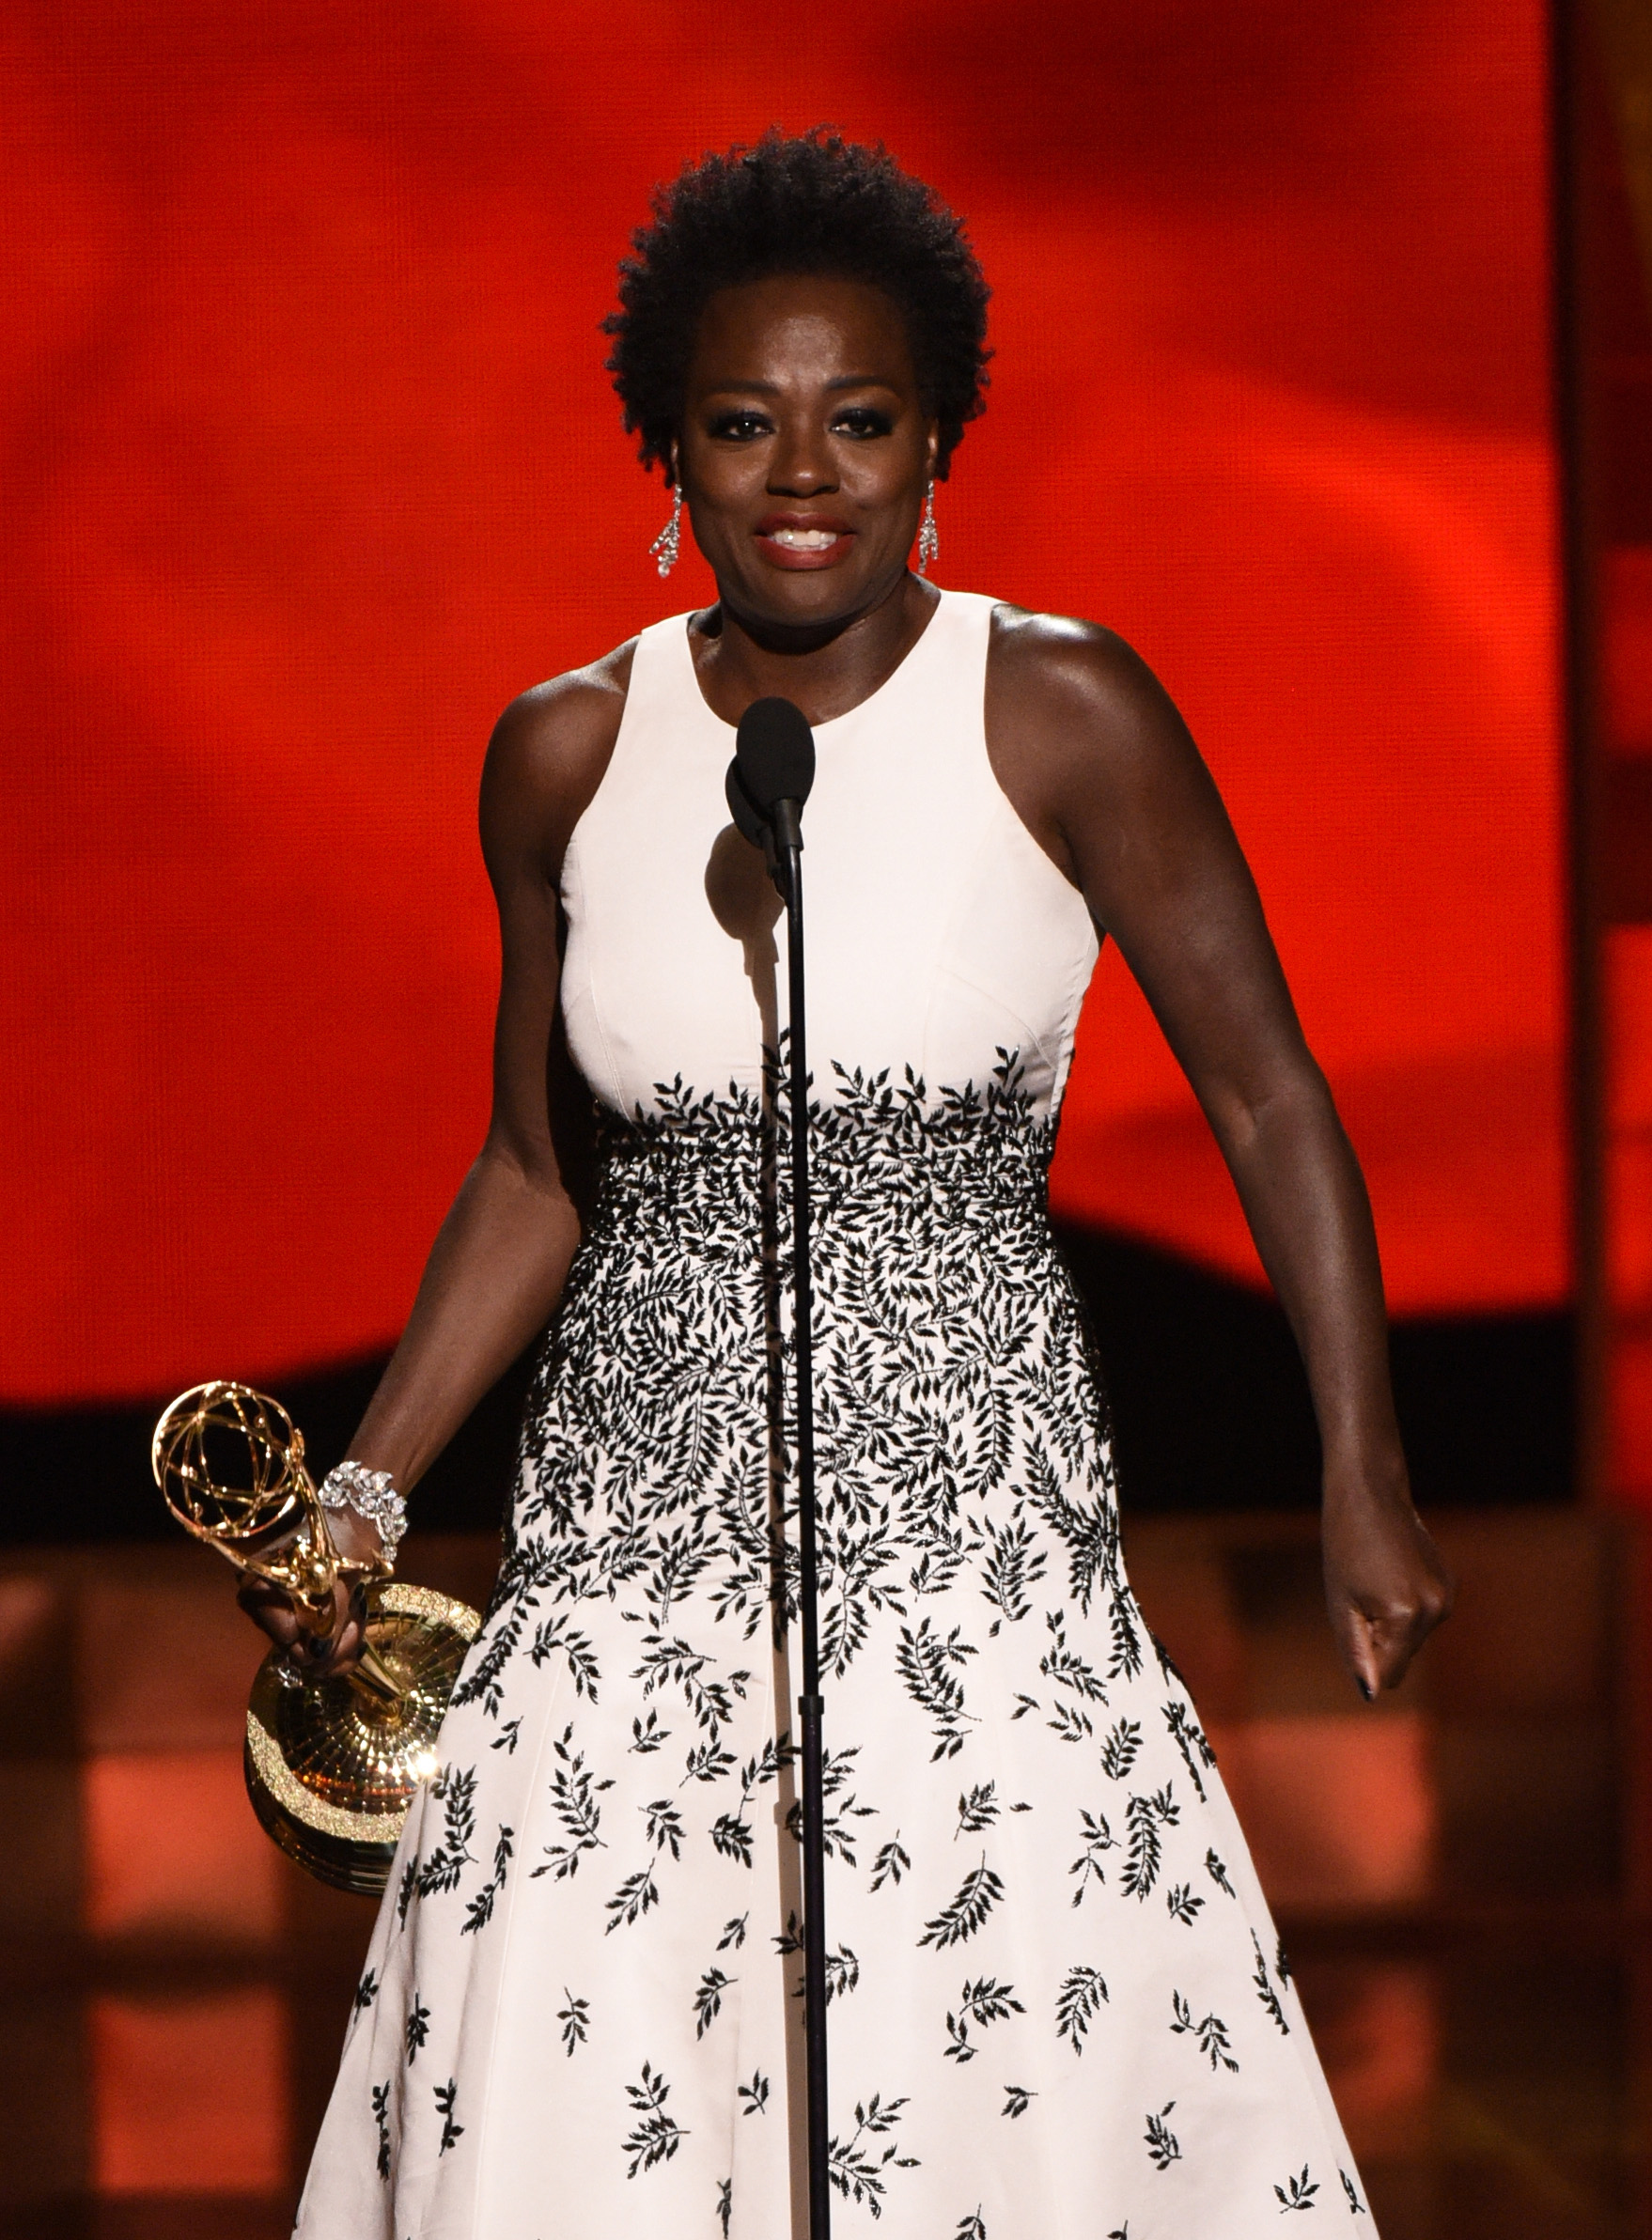 Viola Davis accepts Outstanding Lead Actress in a Drama Series award for How to Get Away with Murder onstage during the 67th Annual Primetime Emmy Awards on Sept. 20, 2015 in Los Angeles, California.